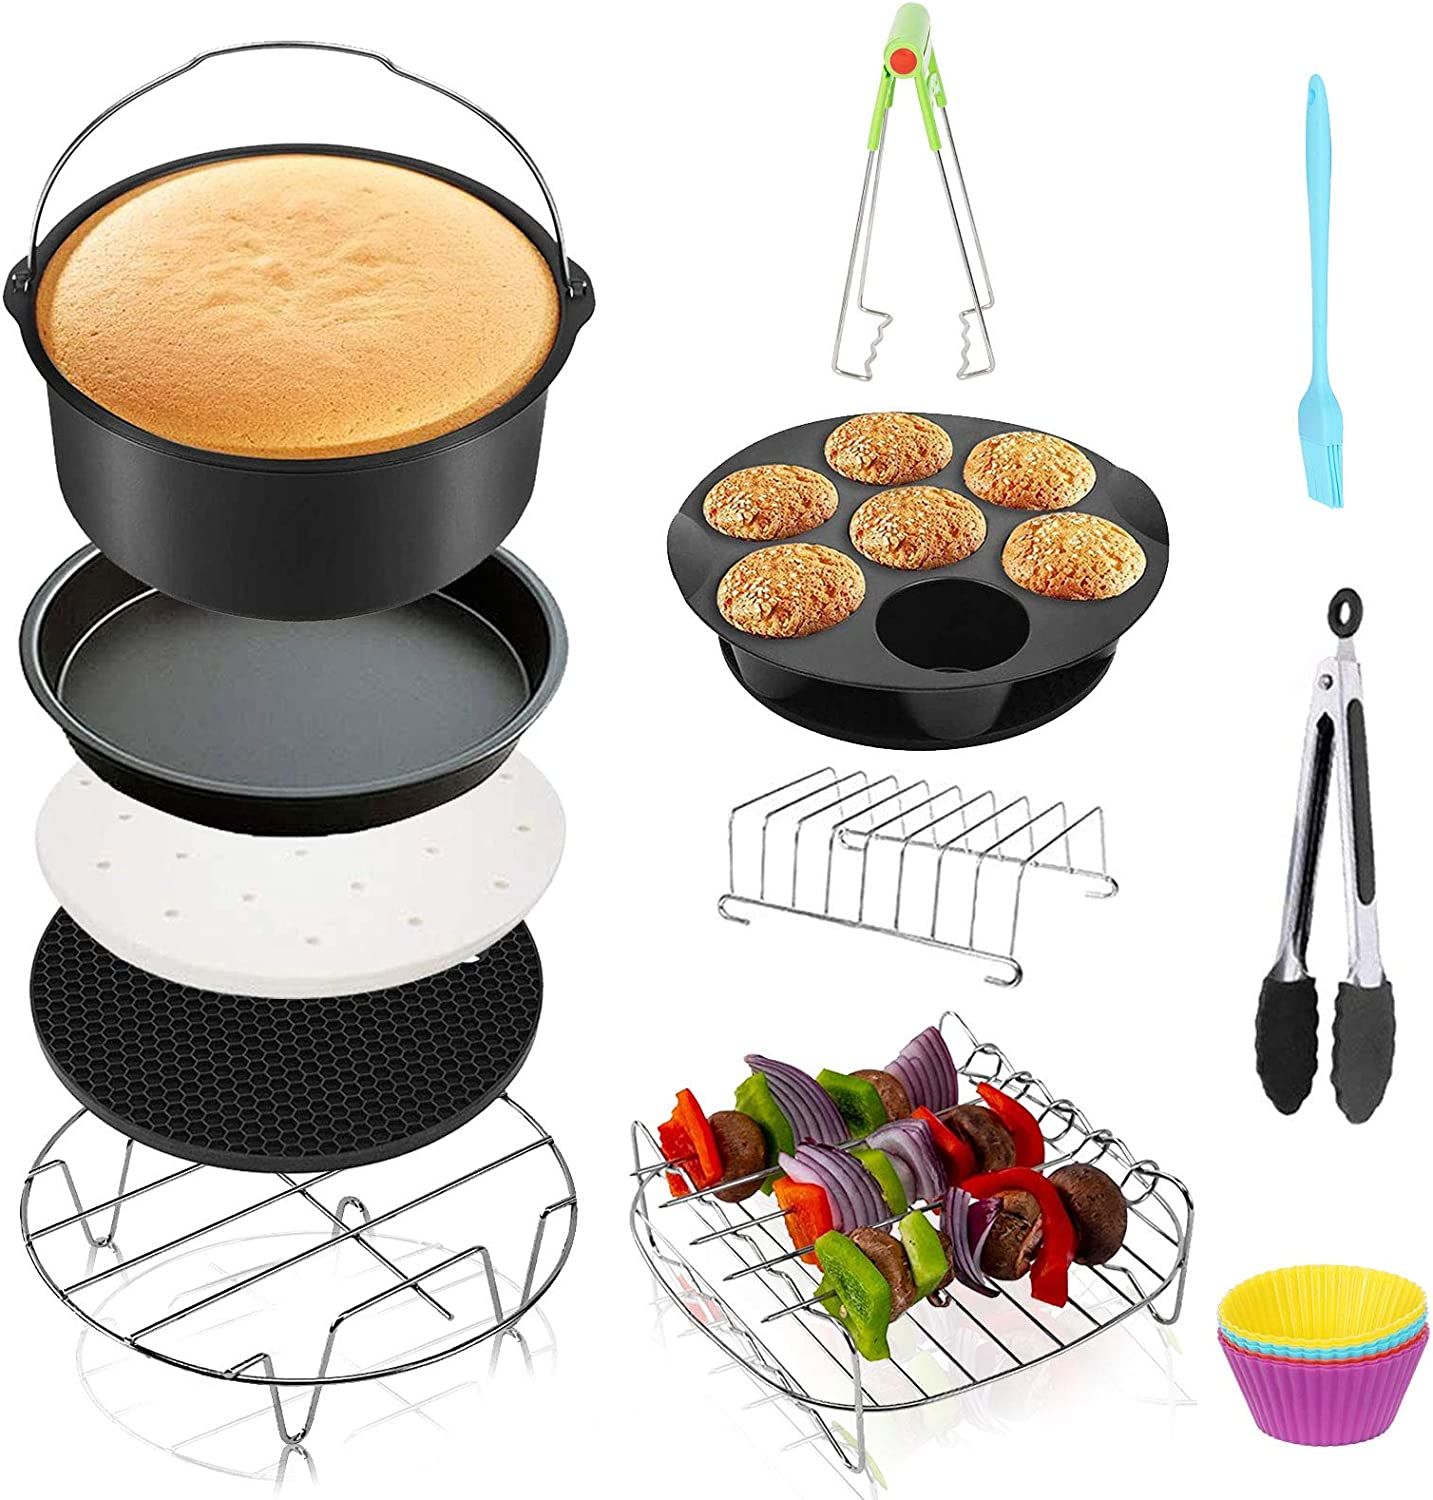 Signstek Air Fryer Accessories Kit XL 8 Inch 13pcs Compatible for Phillips Ninjia Cozyna Air Fryer and Other Square Air Fryers, Deep Air Fryer Accessories Fit All 4.2 QT-6.8 QT Air Fryer